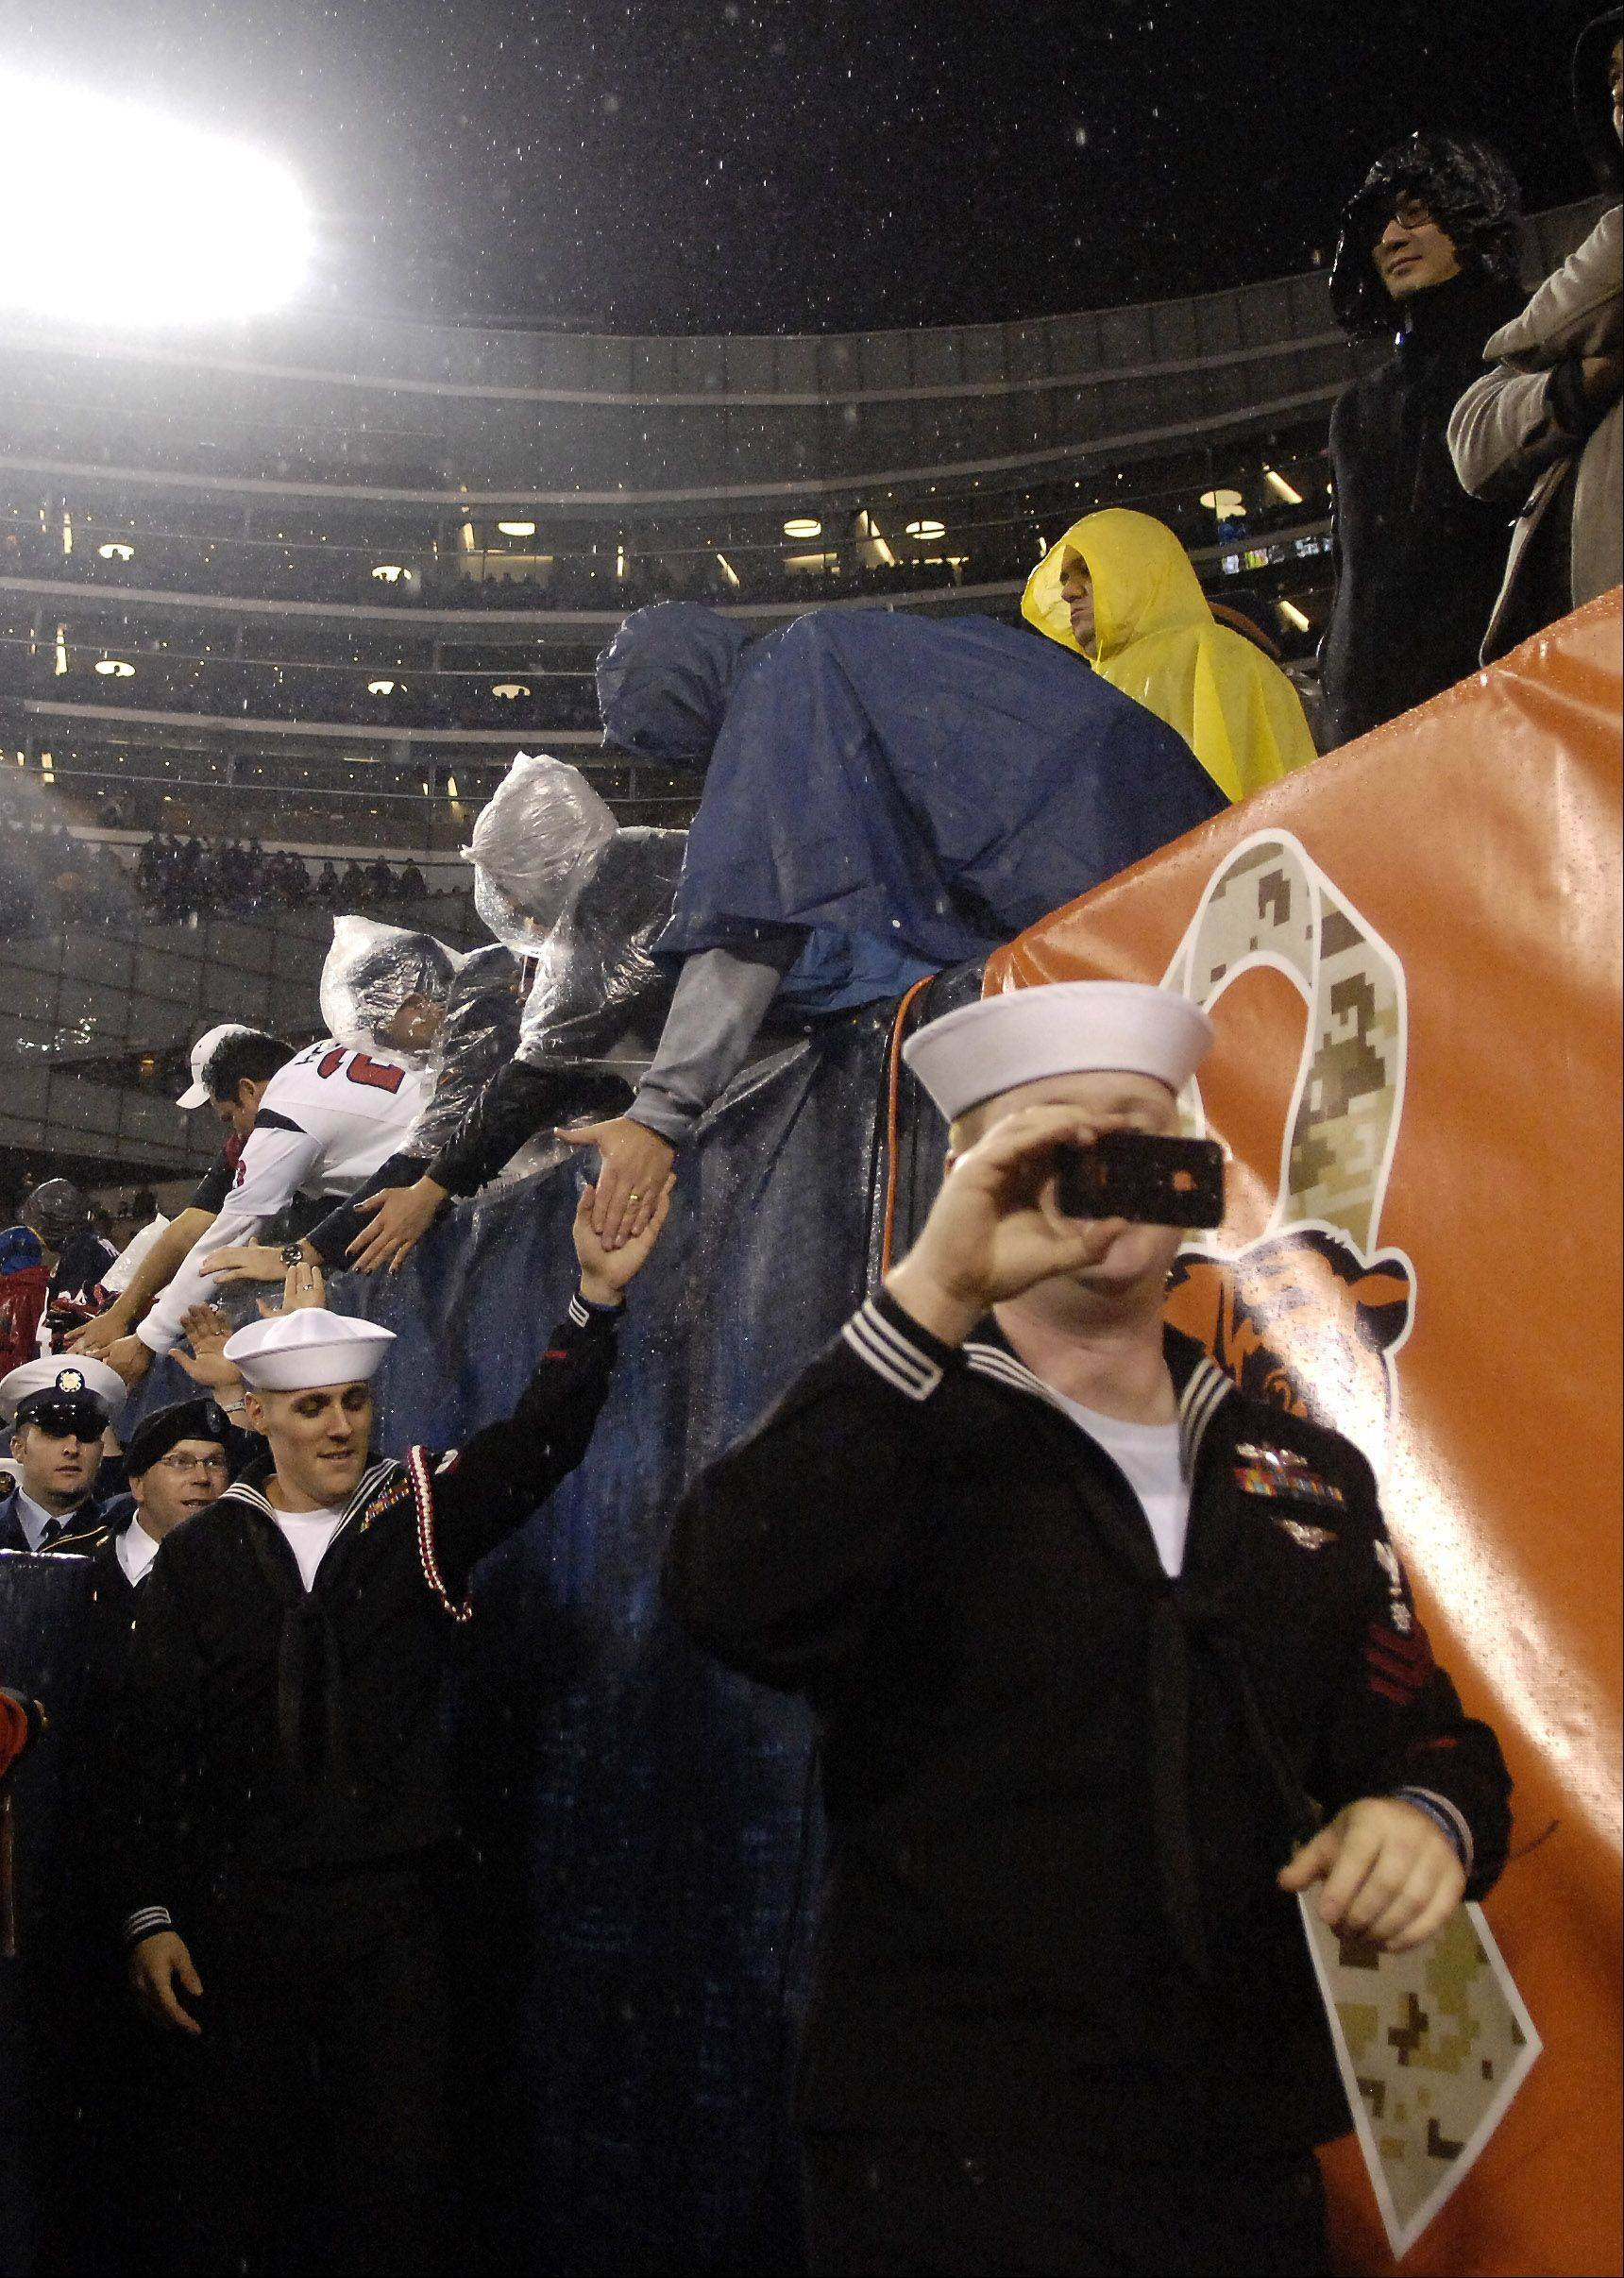 Members of the military give high fives to the fans during Sunday's game at Soldier Field in Chicago.